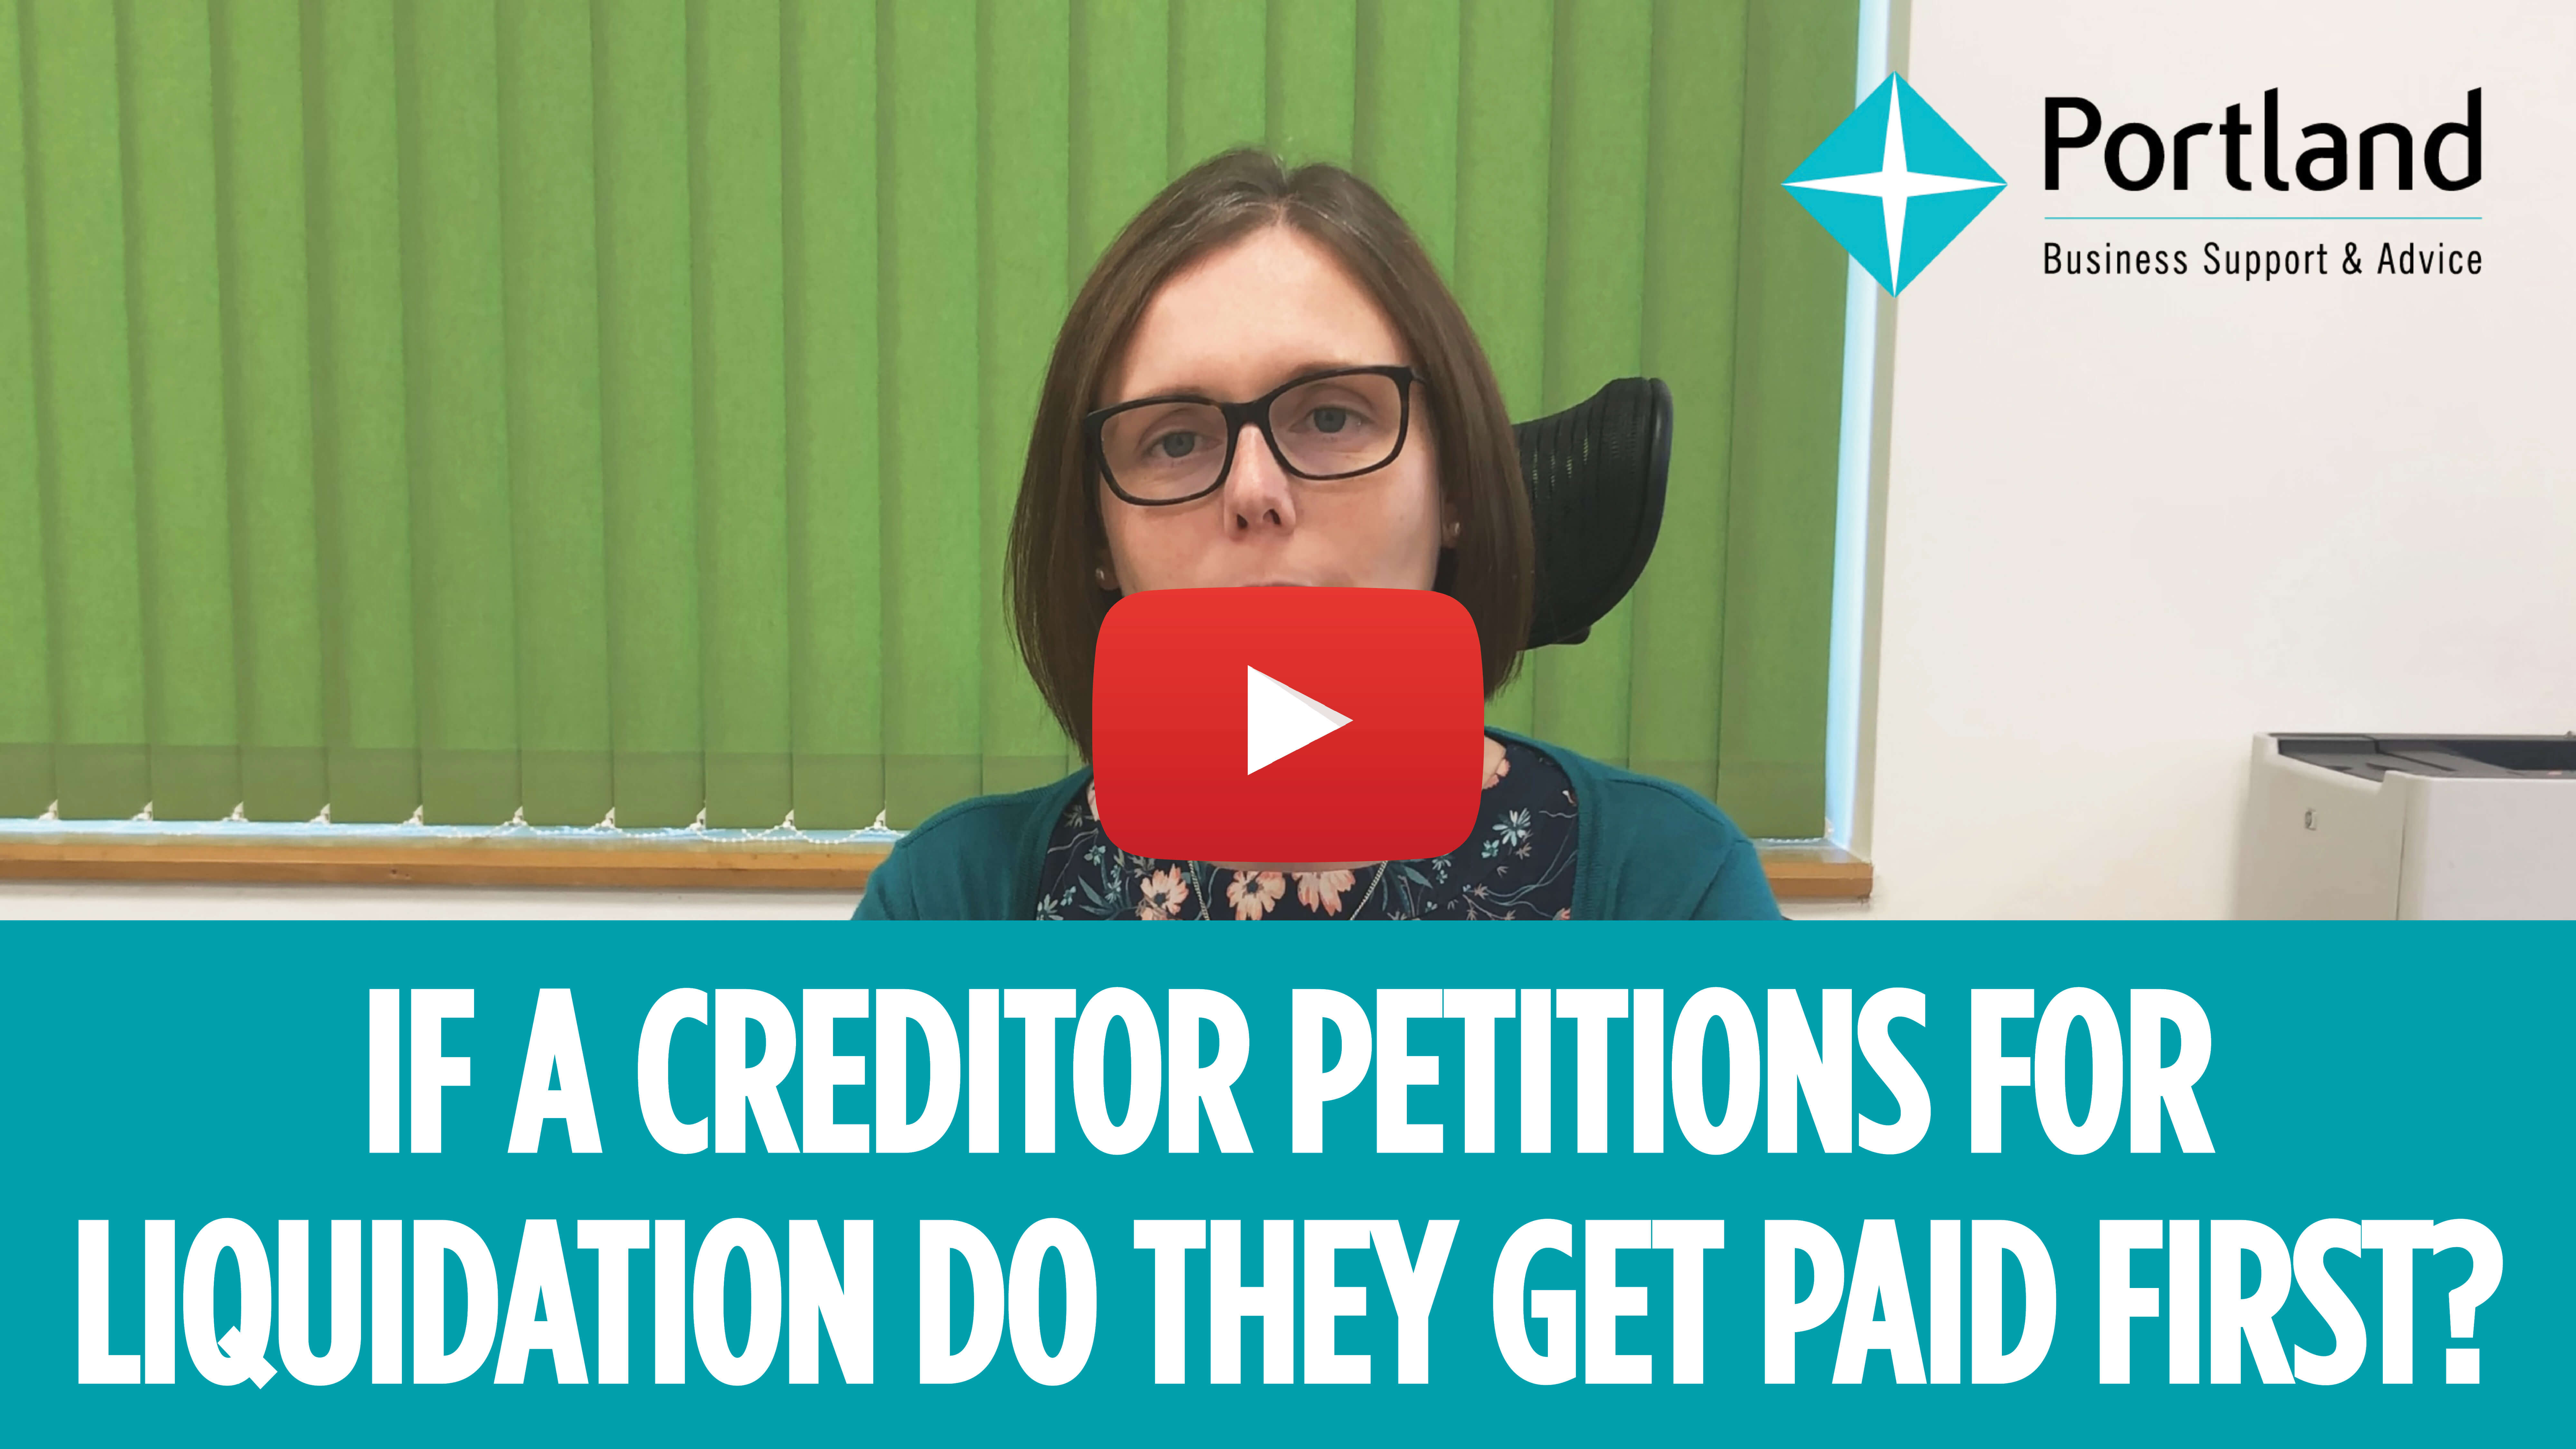 creditor petitions for liquidation